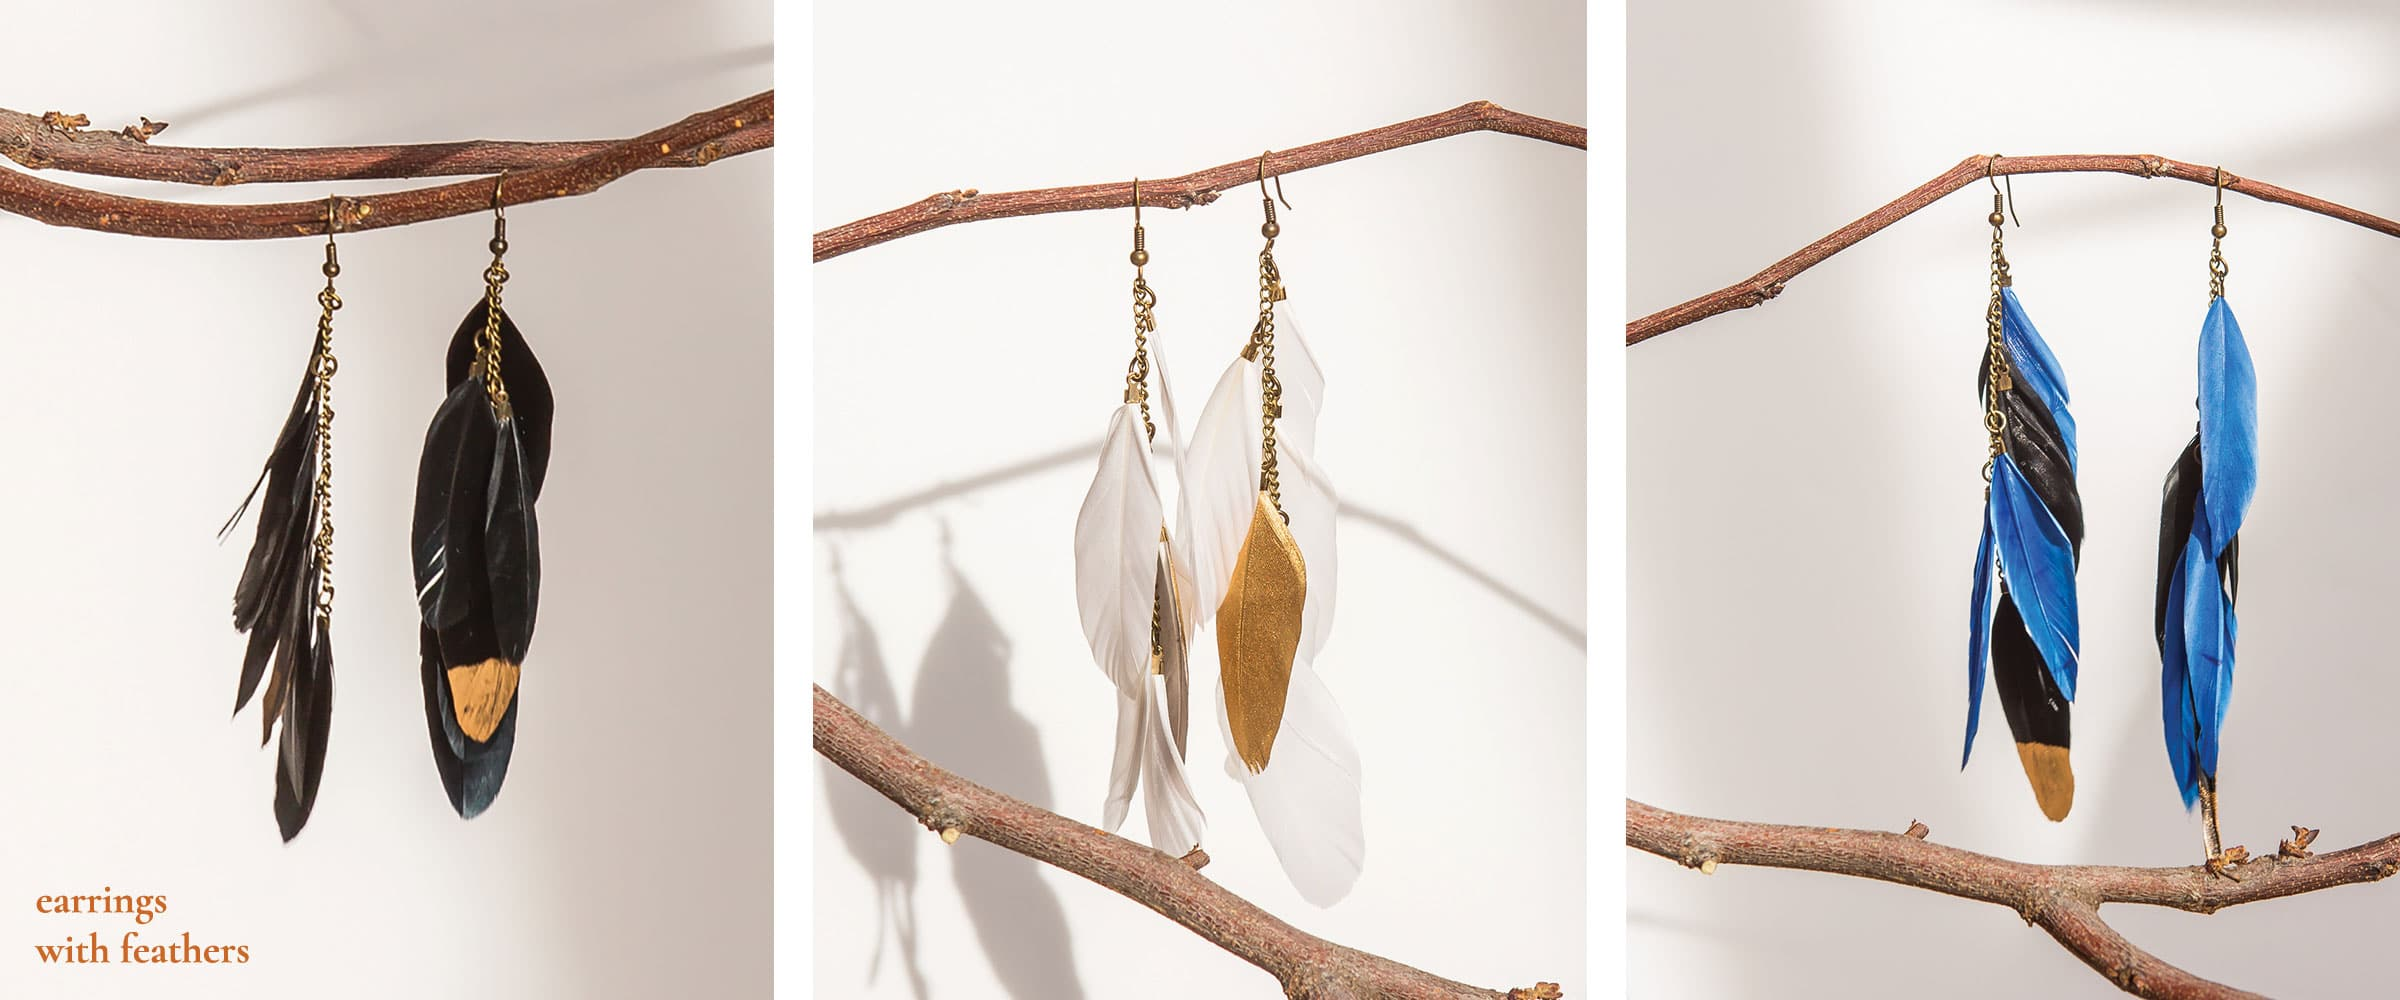 earrings-with-feathers